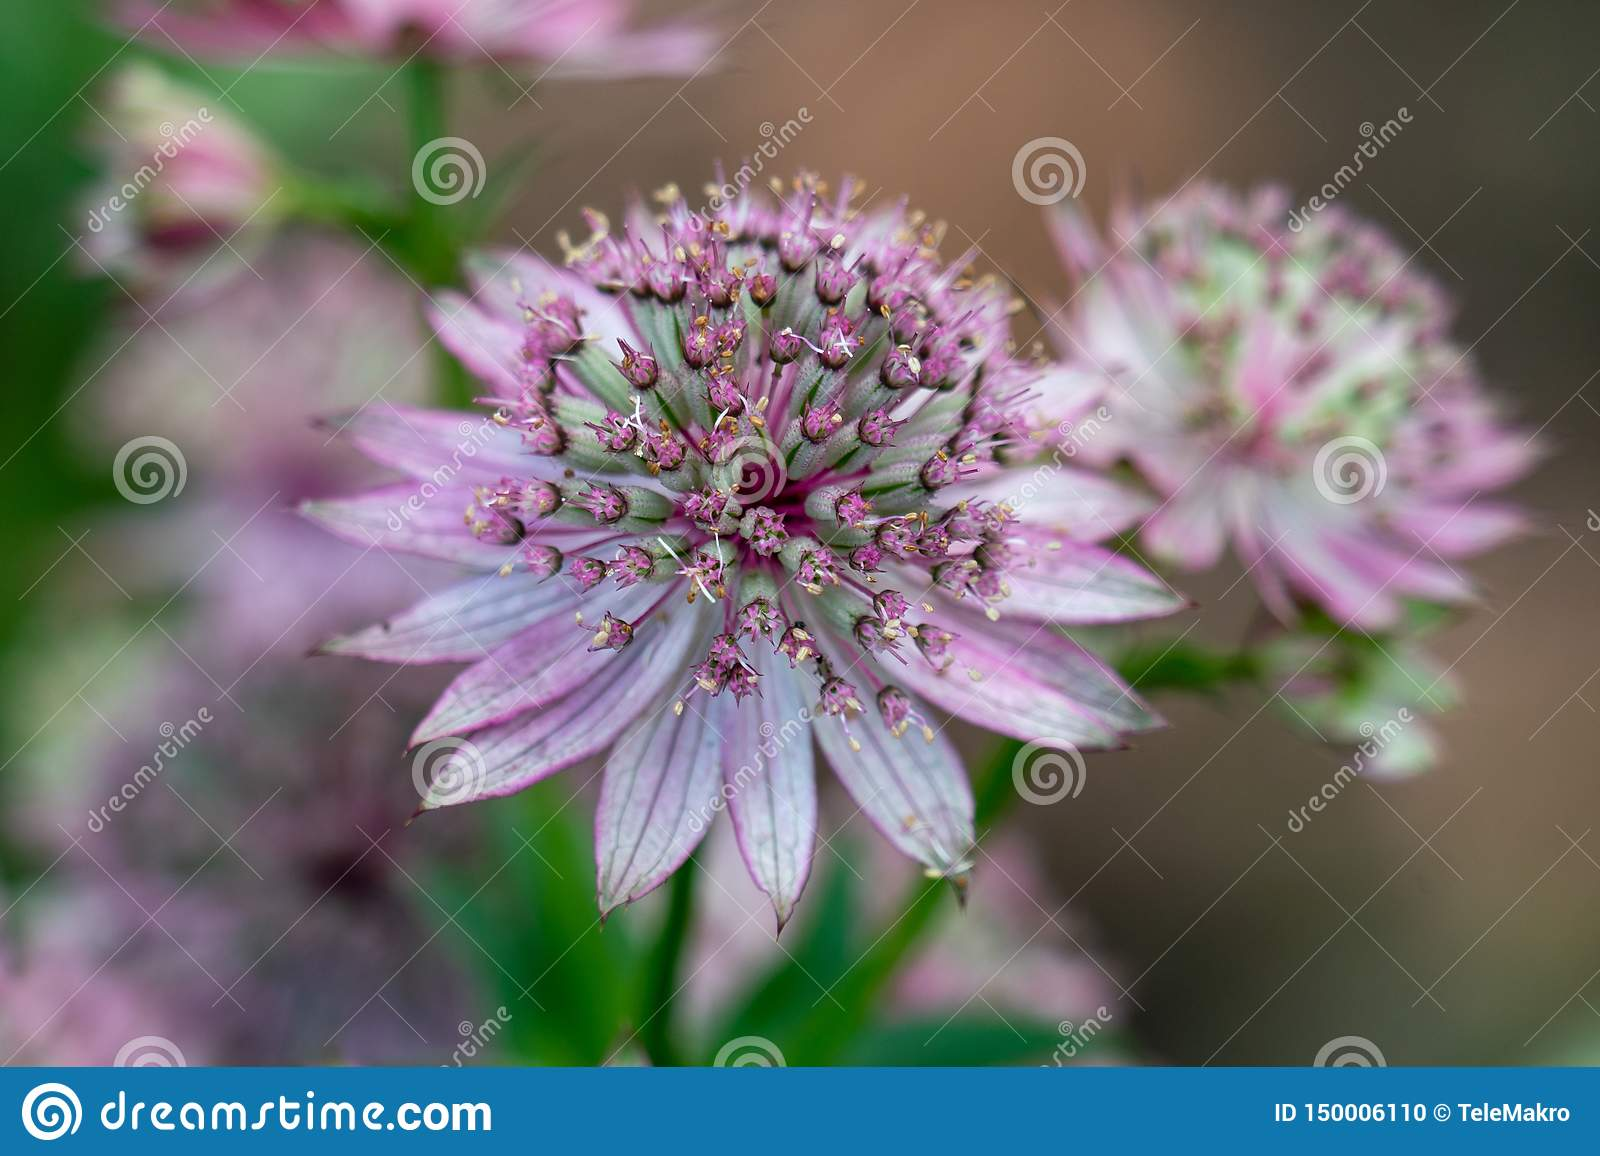 Macro of a pink flower of astrantia major showing many details like pistils and pollen